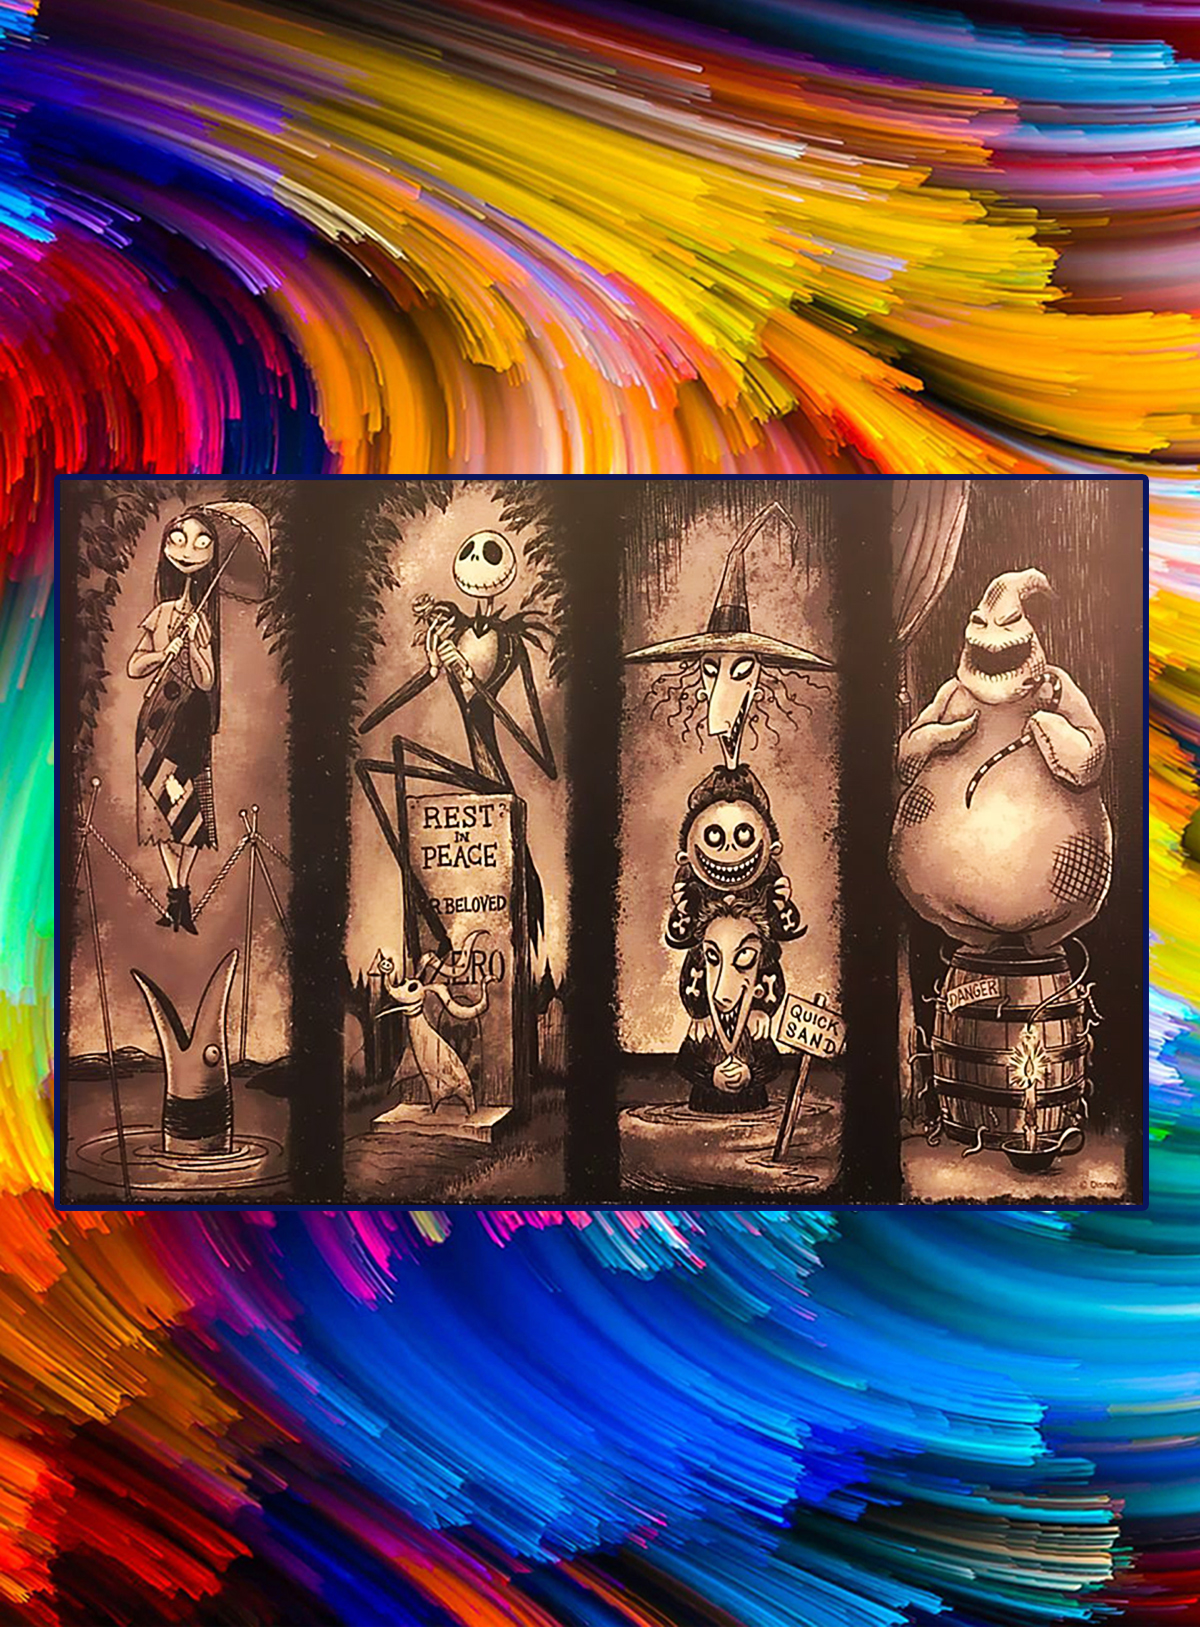 Nightmare before christmas stretching room poster